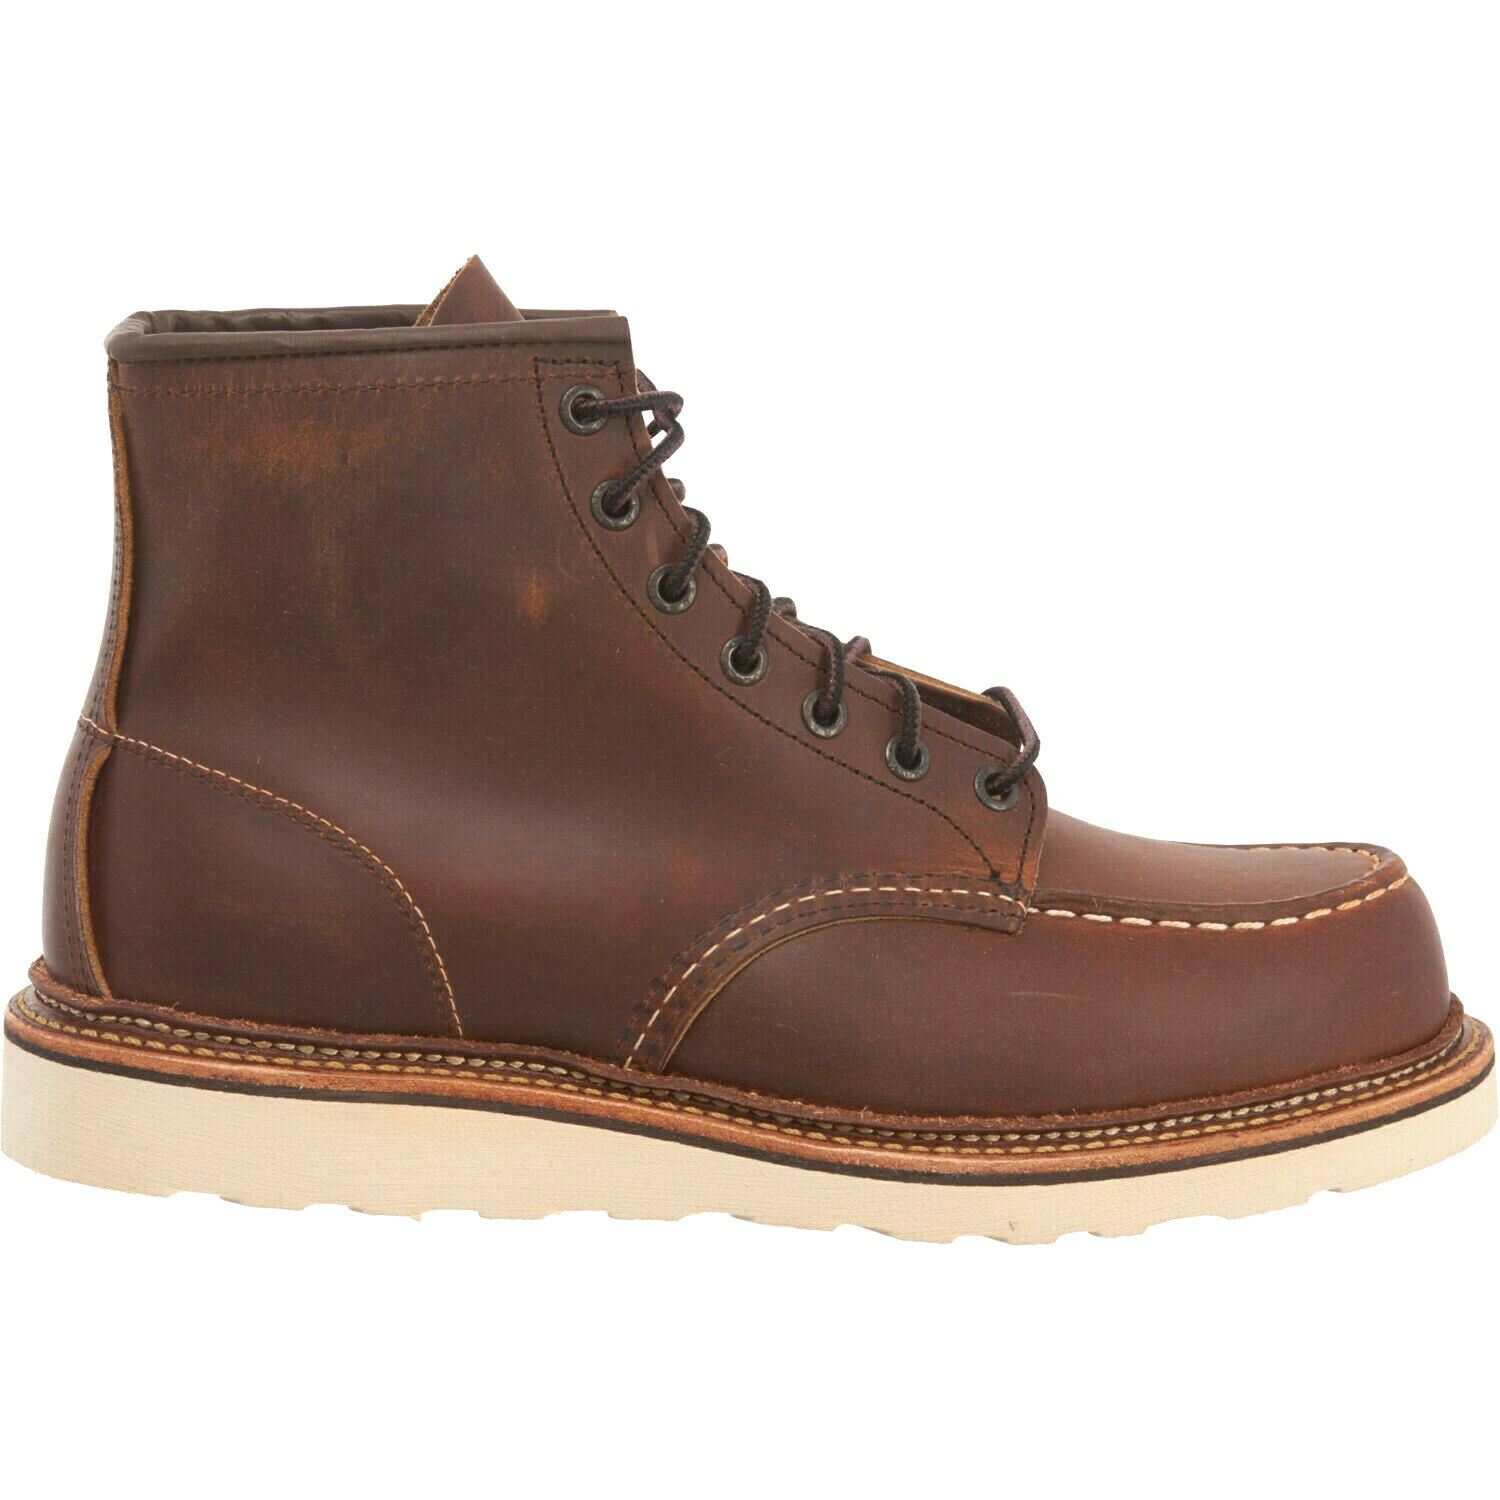 0607d581969 9.5 D Red Wing Shoes 1907 Classic Moc men's 6